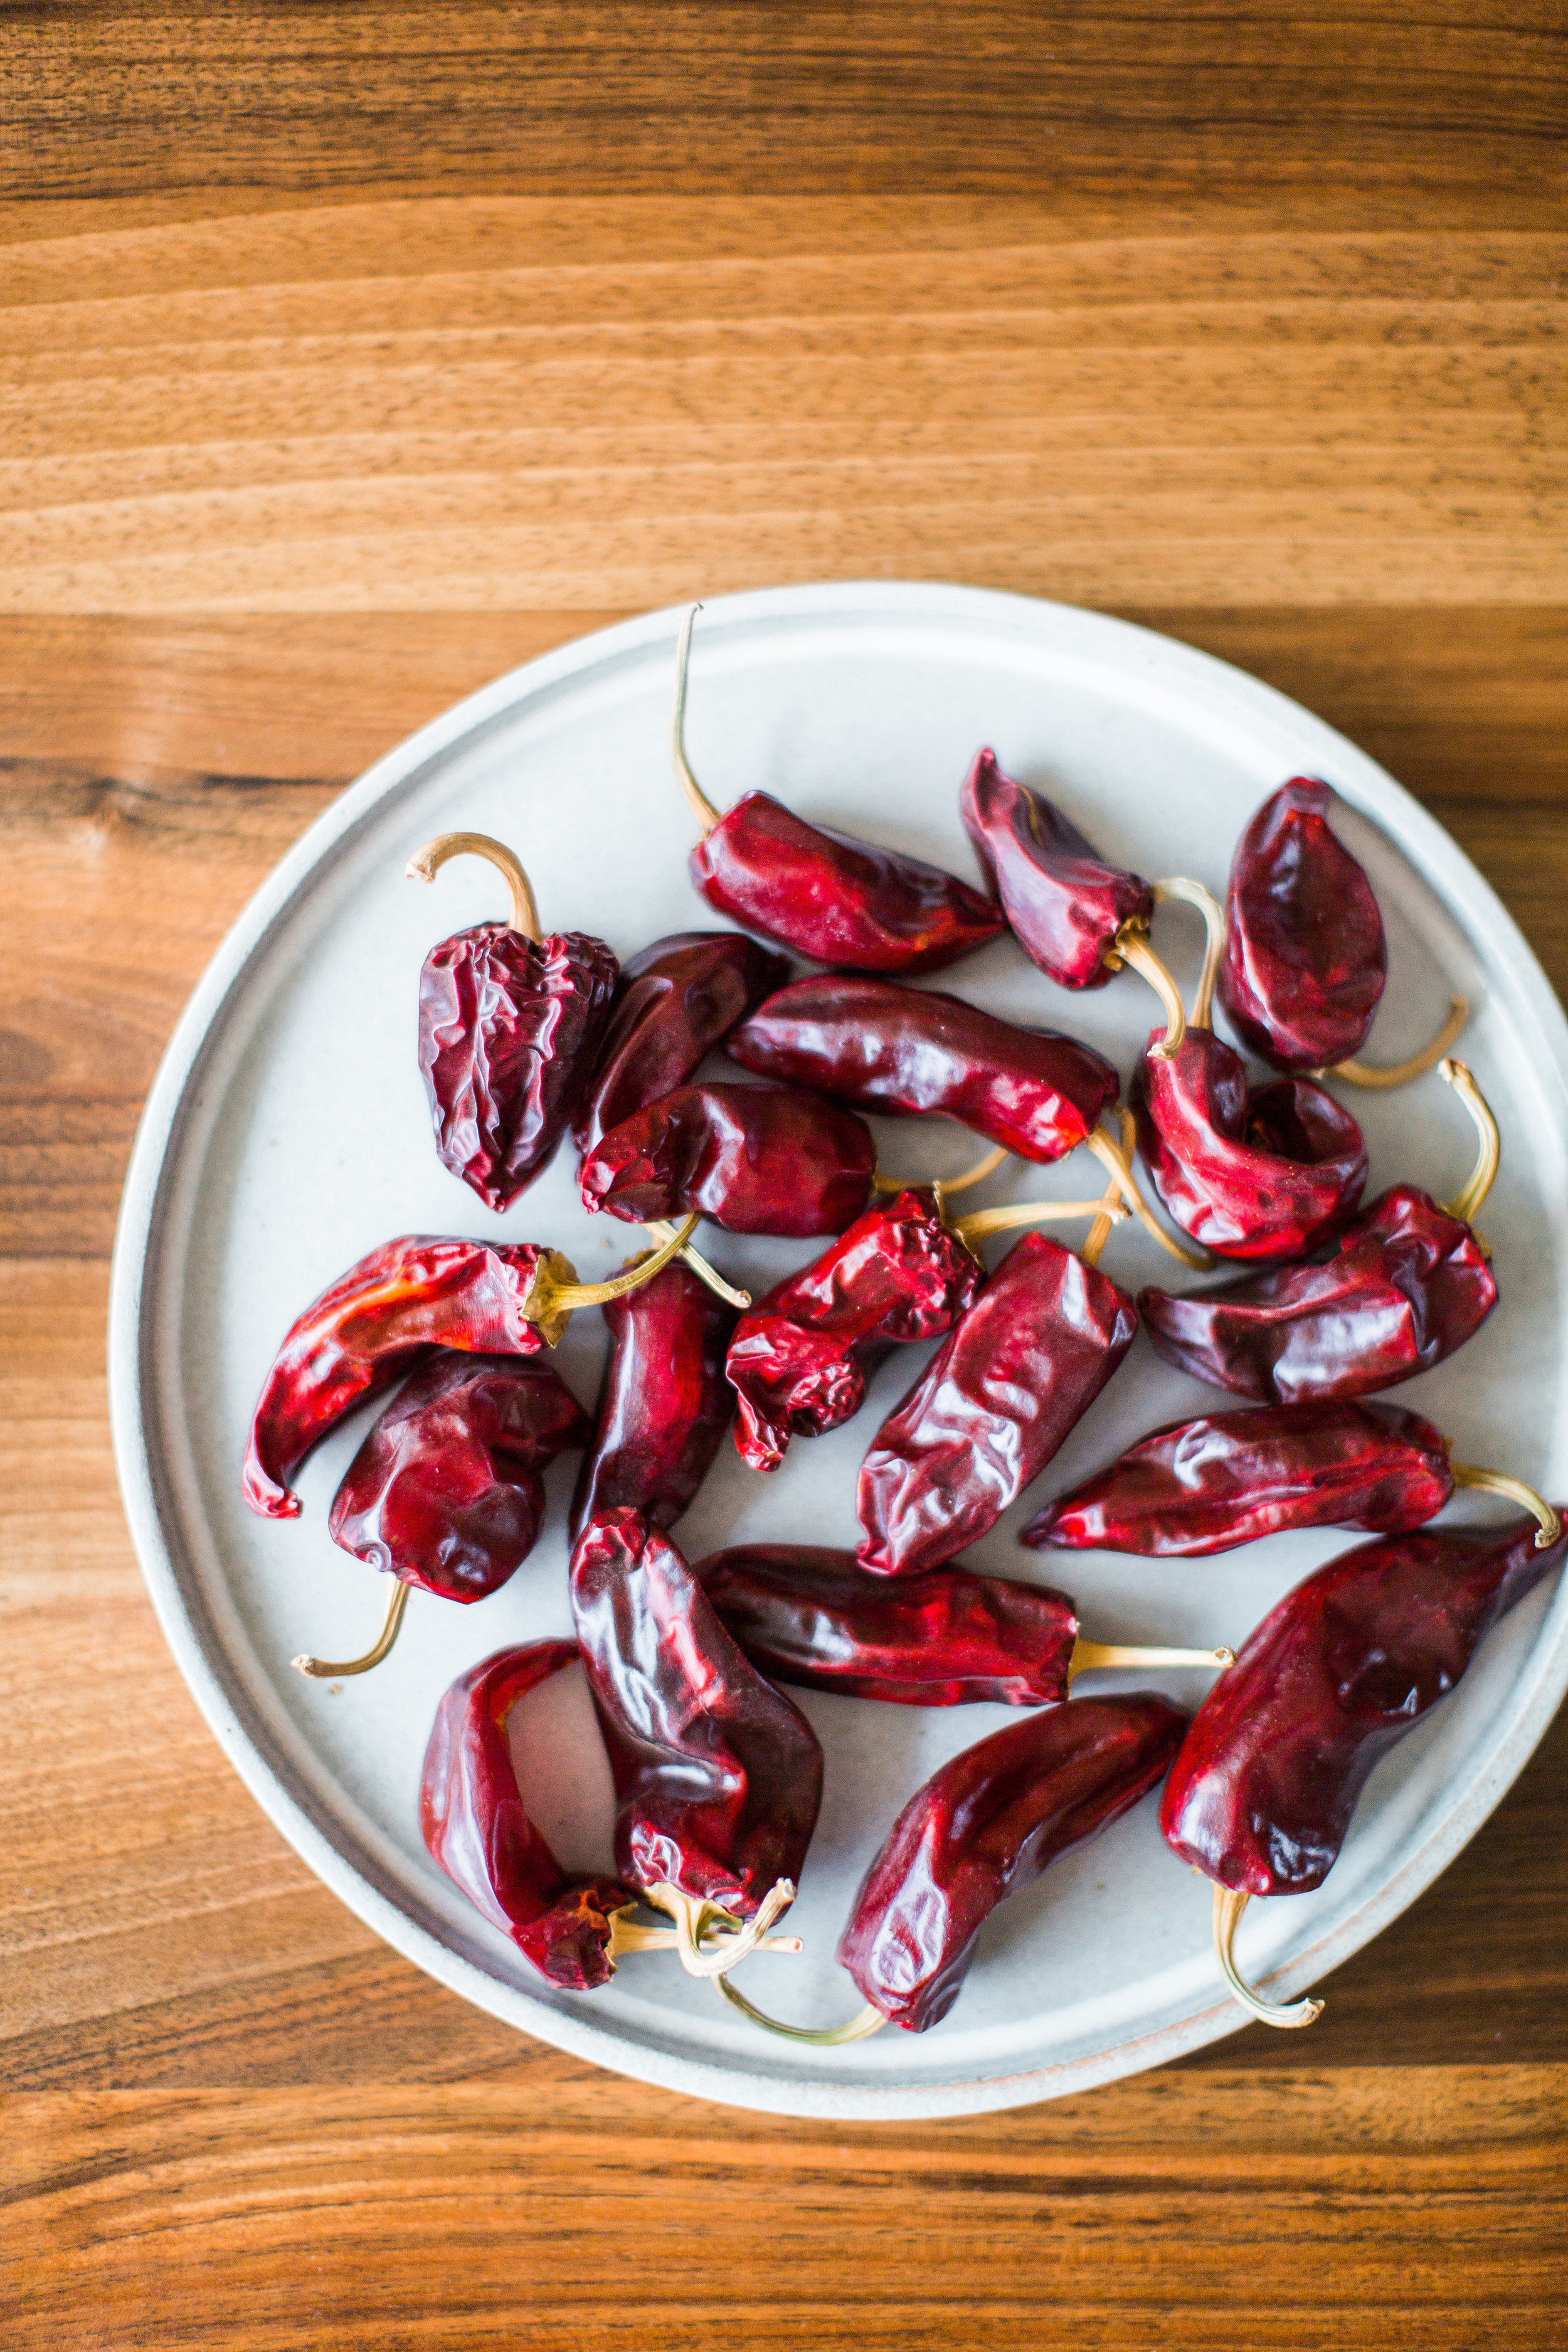 dried red chilis.